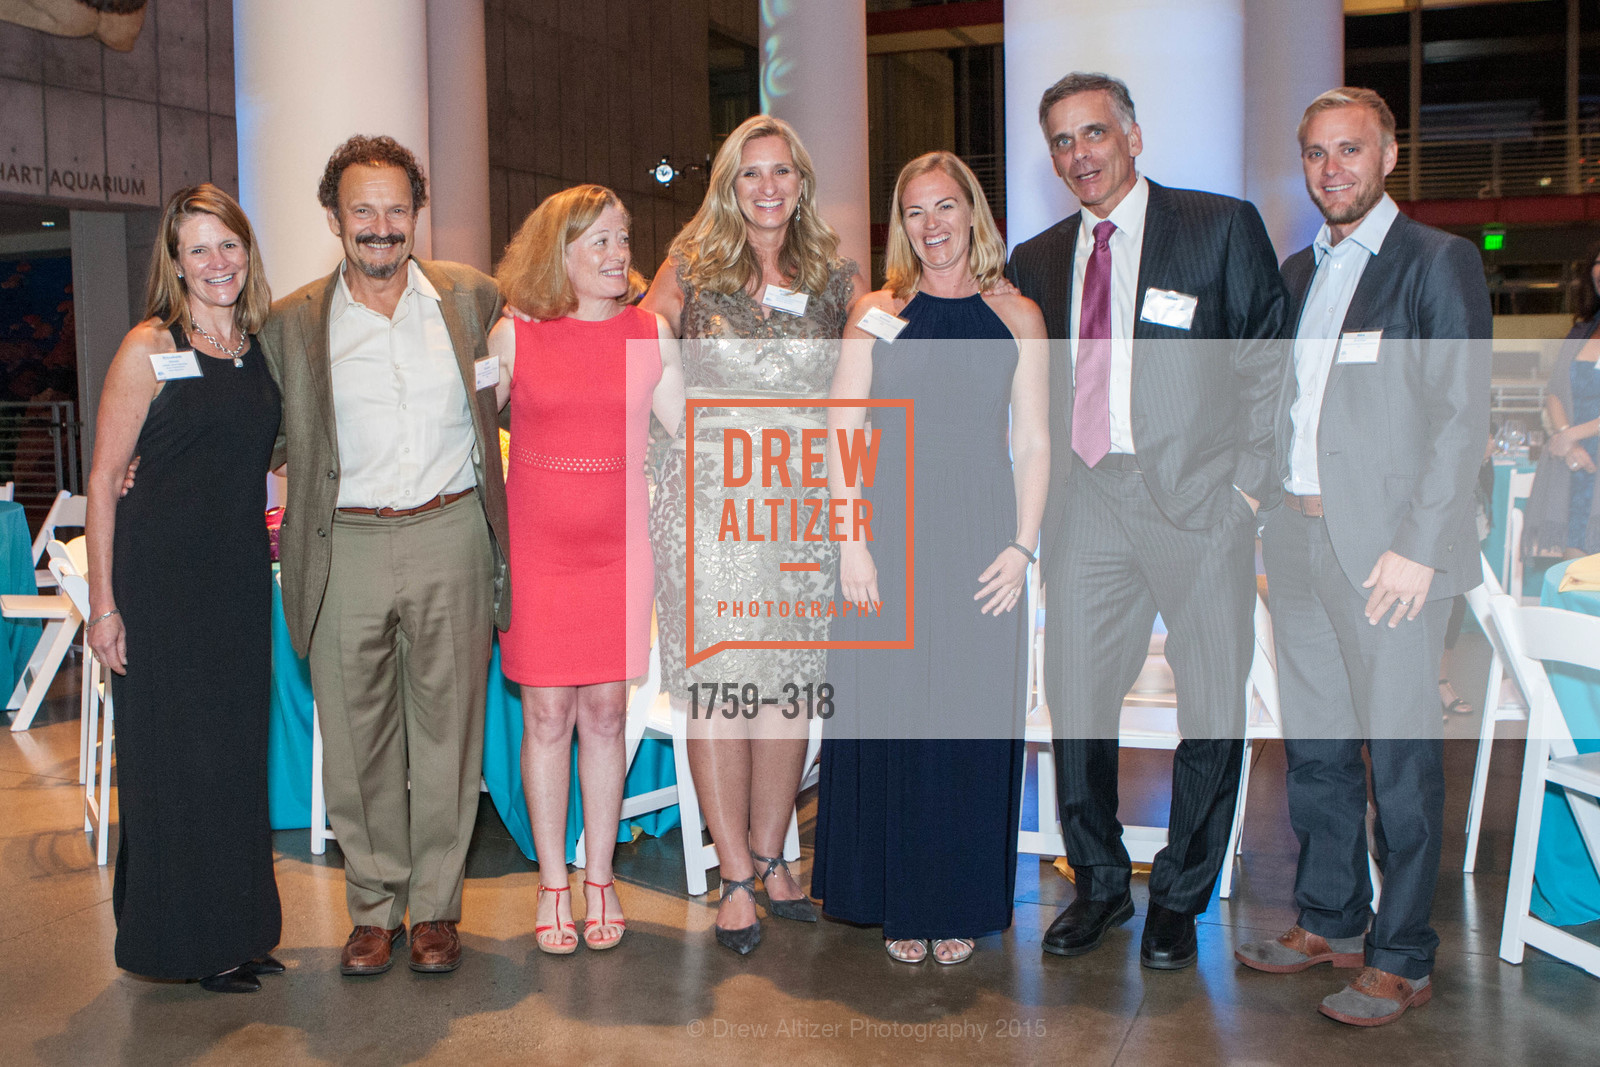 Elizabeth Ulmer, Jeff Chanin, Miriam Hicer, Kristine Billeter, Jill Kreston, Julian Osinski, Alex Kreston, Coral Reef Alliance at the California Academy of Sciences, Academy of Sciences, September 26th, 2015,Drew Altizer, Drew Altizer Photography, full-service agency, private events, San Francisco photographer, photographer california